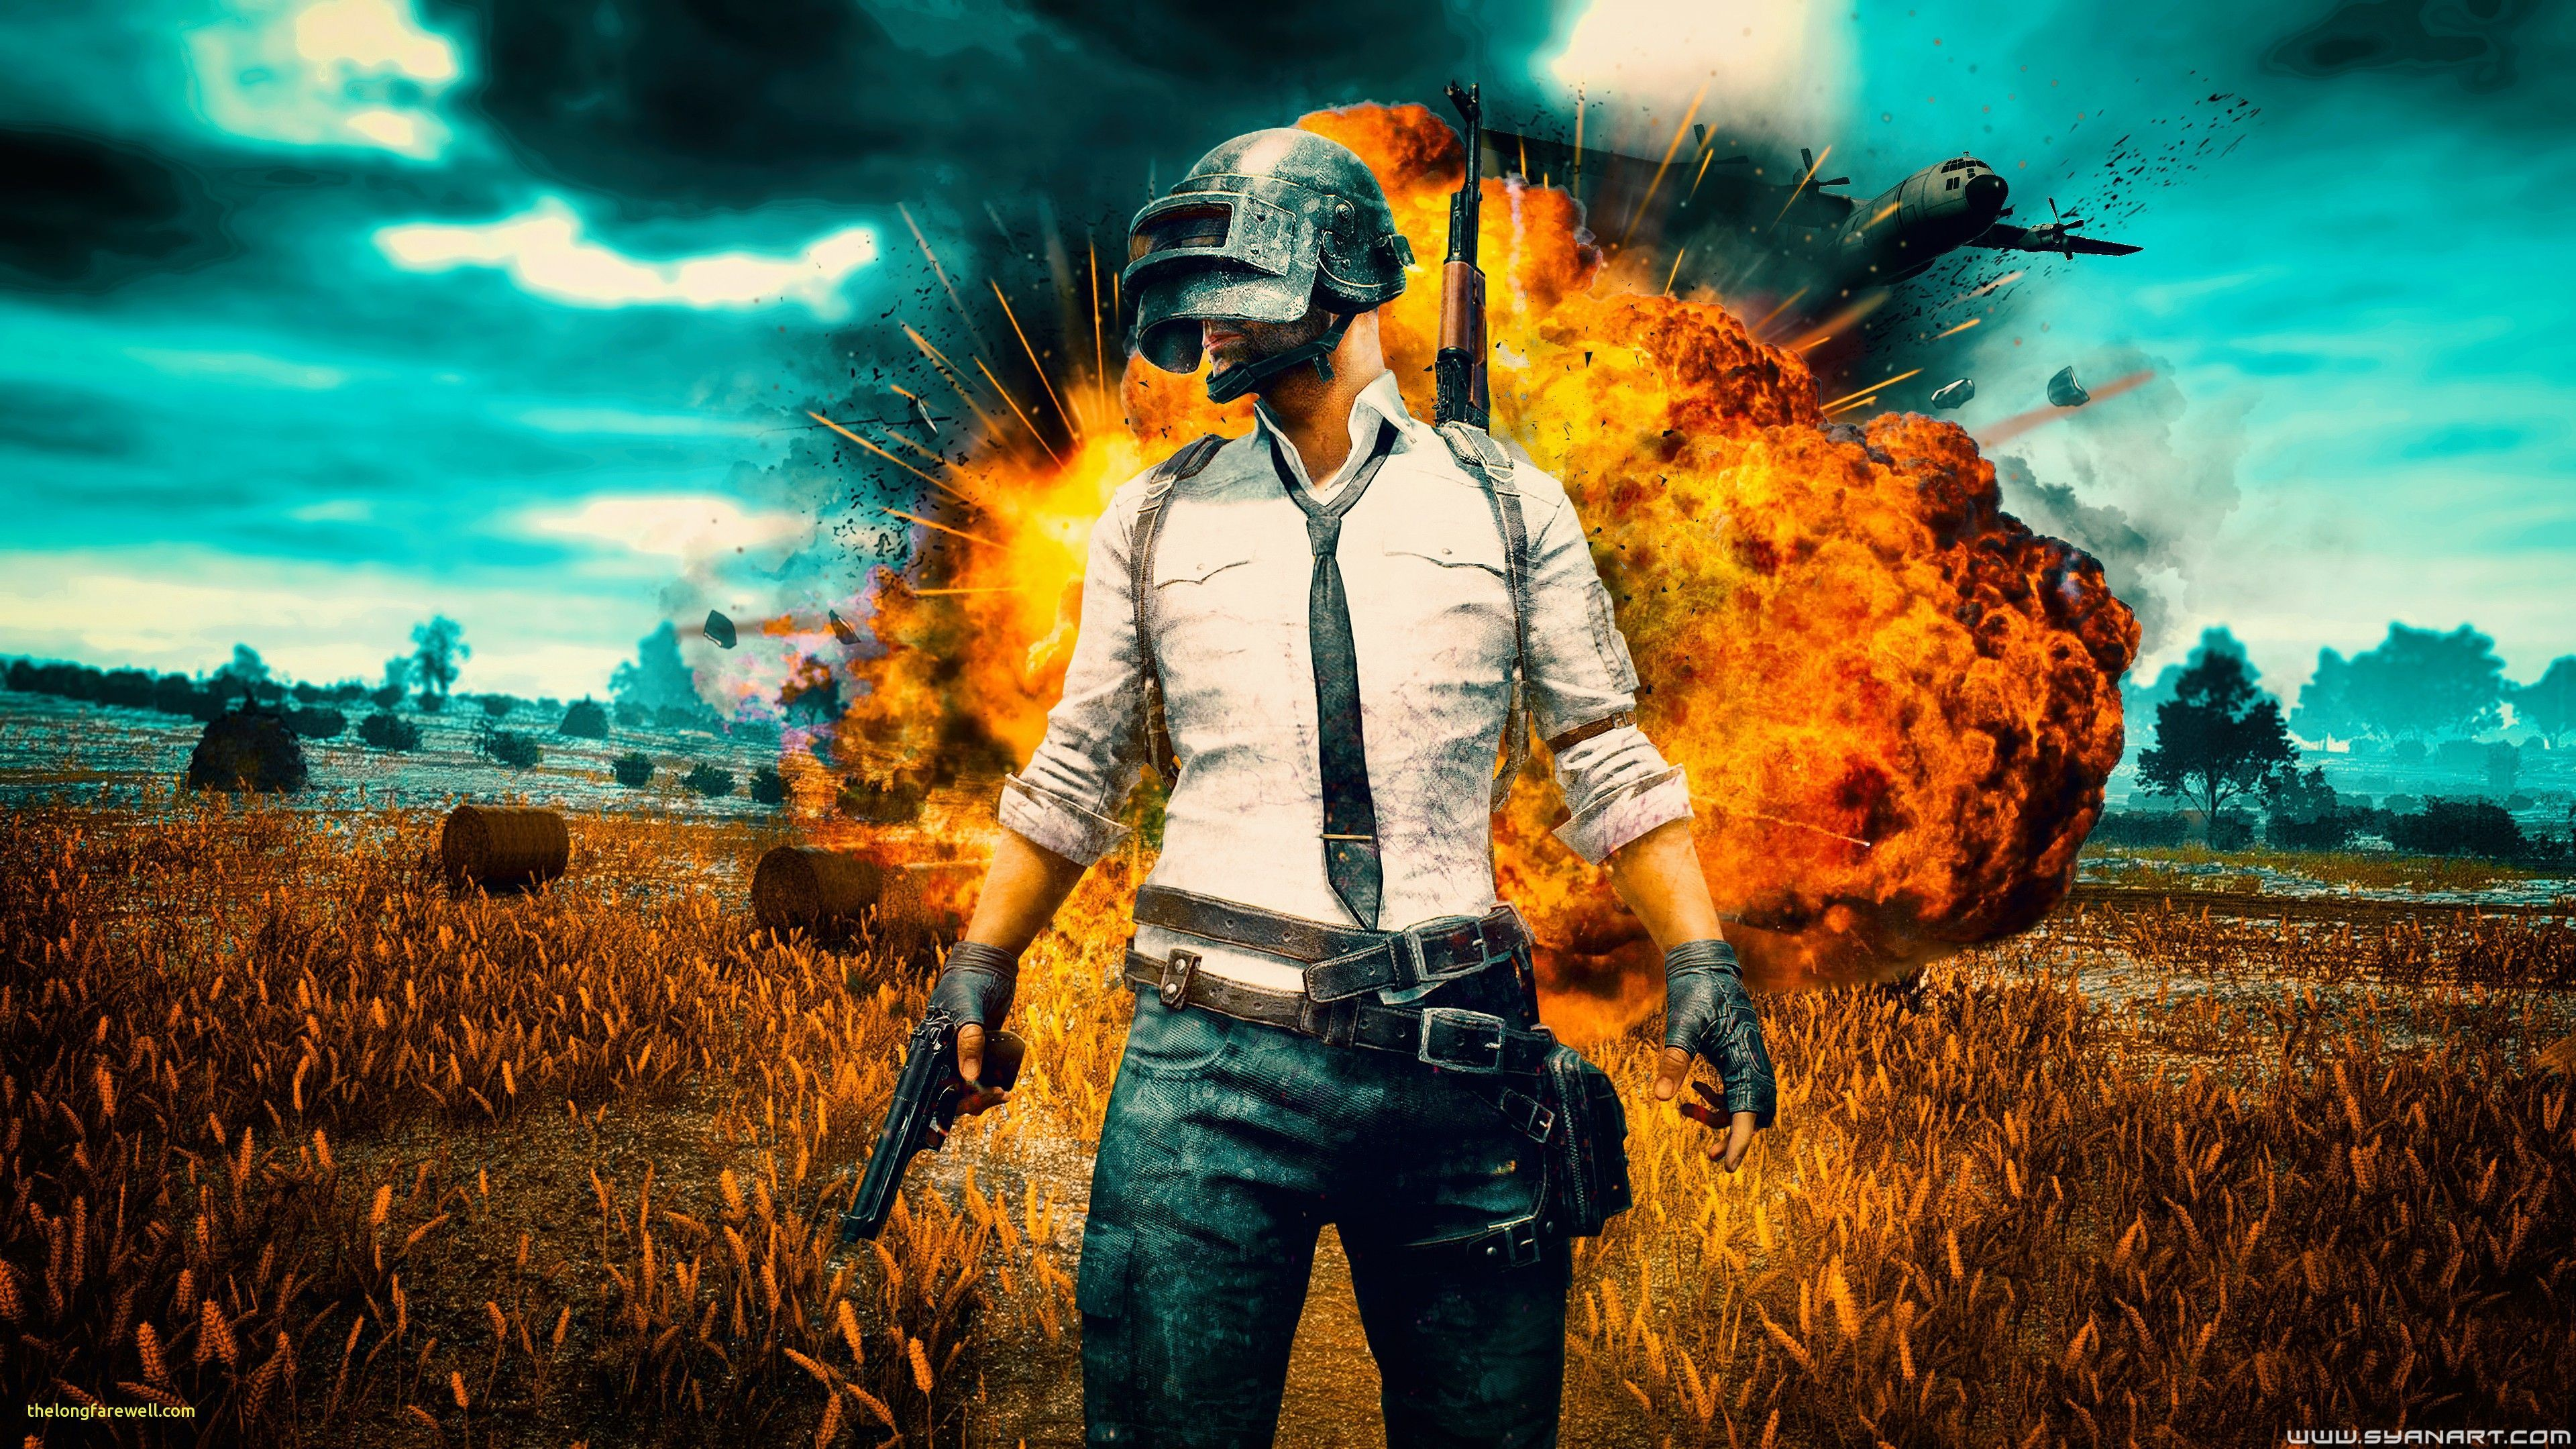 Pubg Wallpapers: PUBG 4K Gaming Wallpapers